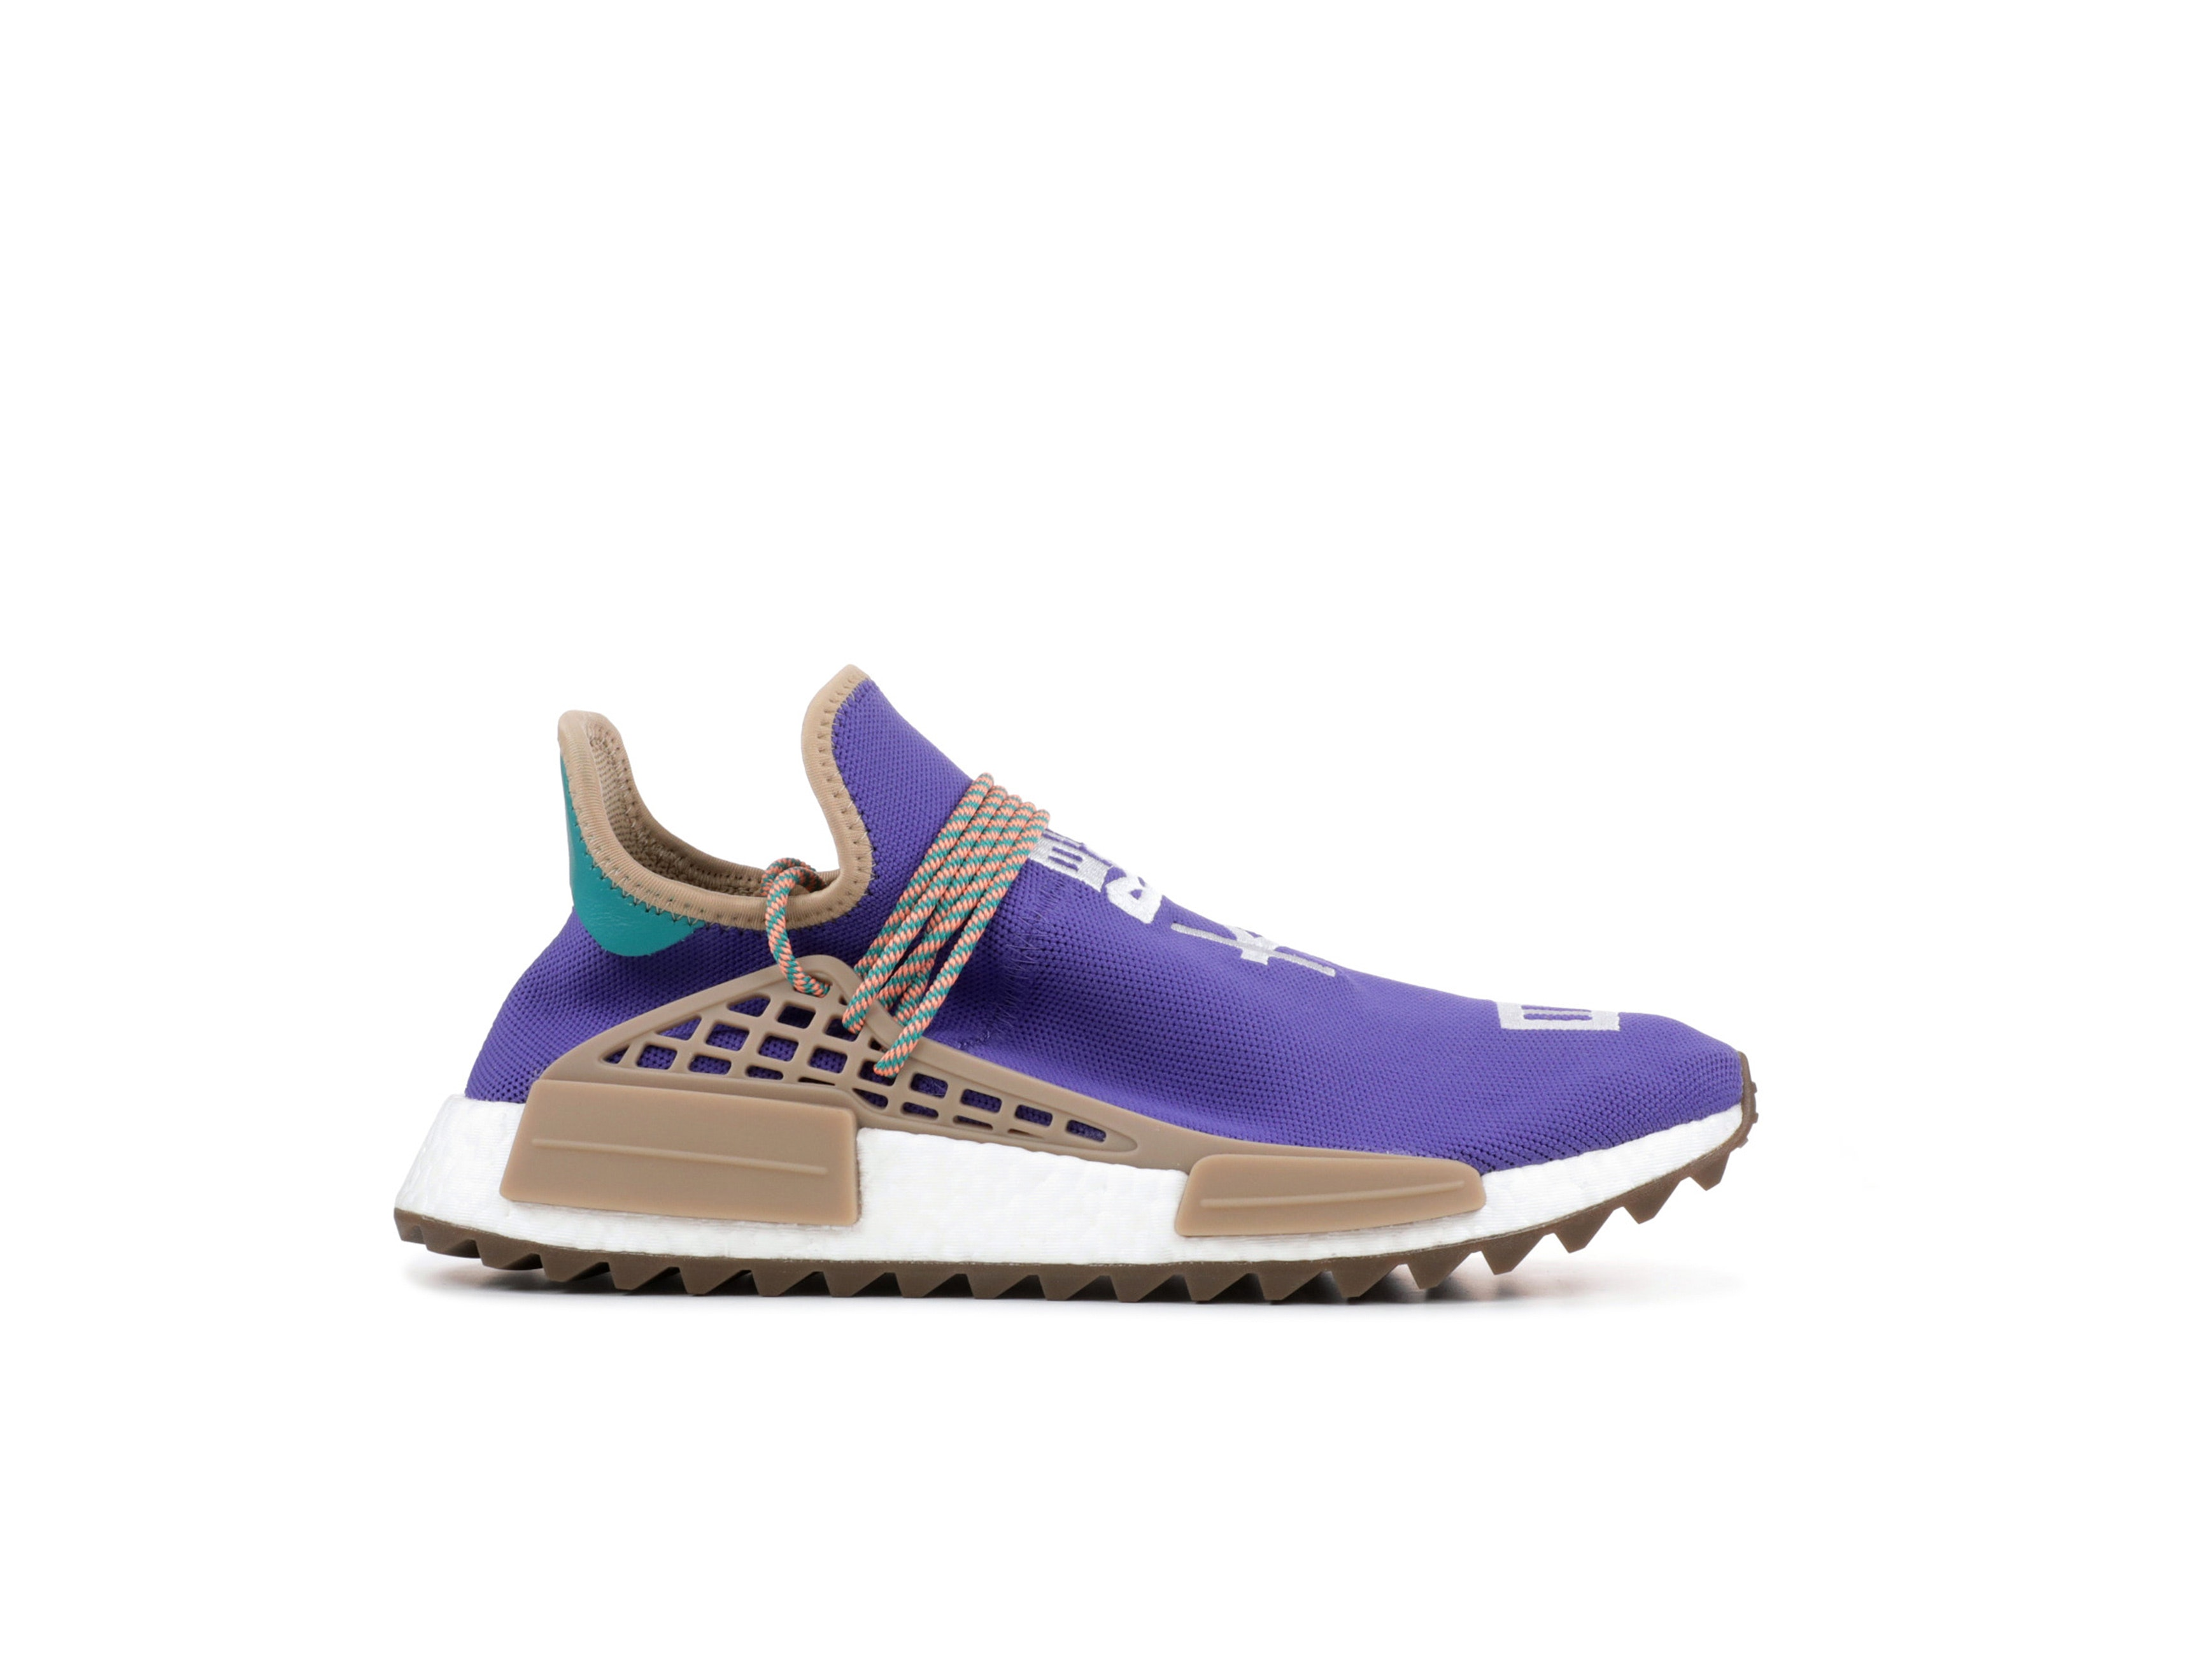 new arrival 0f4a6 eac29 Shop NMD Human Race Trail Friends and Family Respira x ...